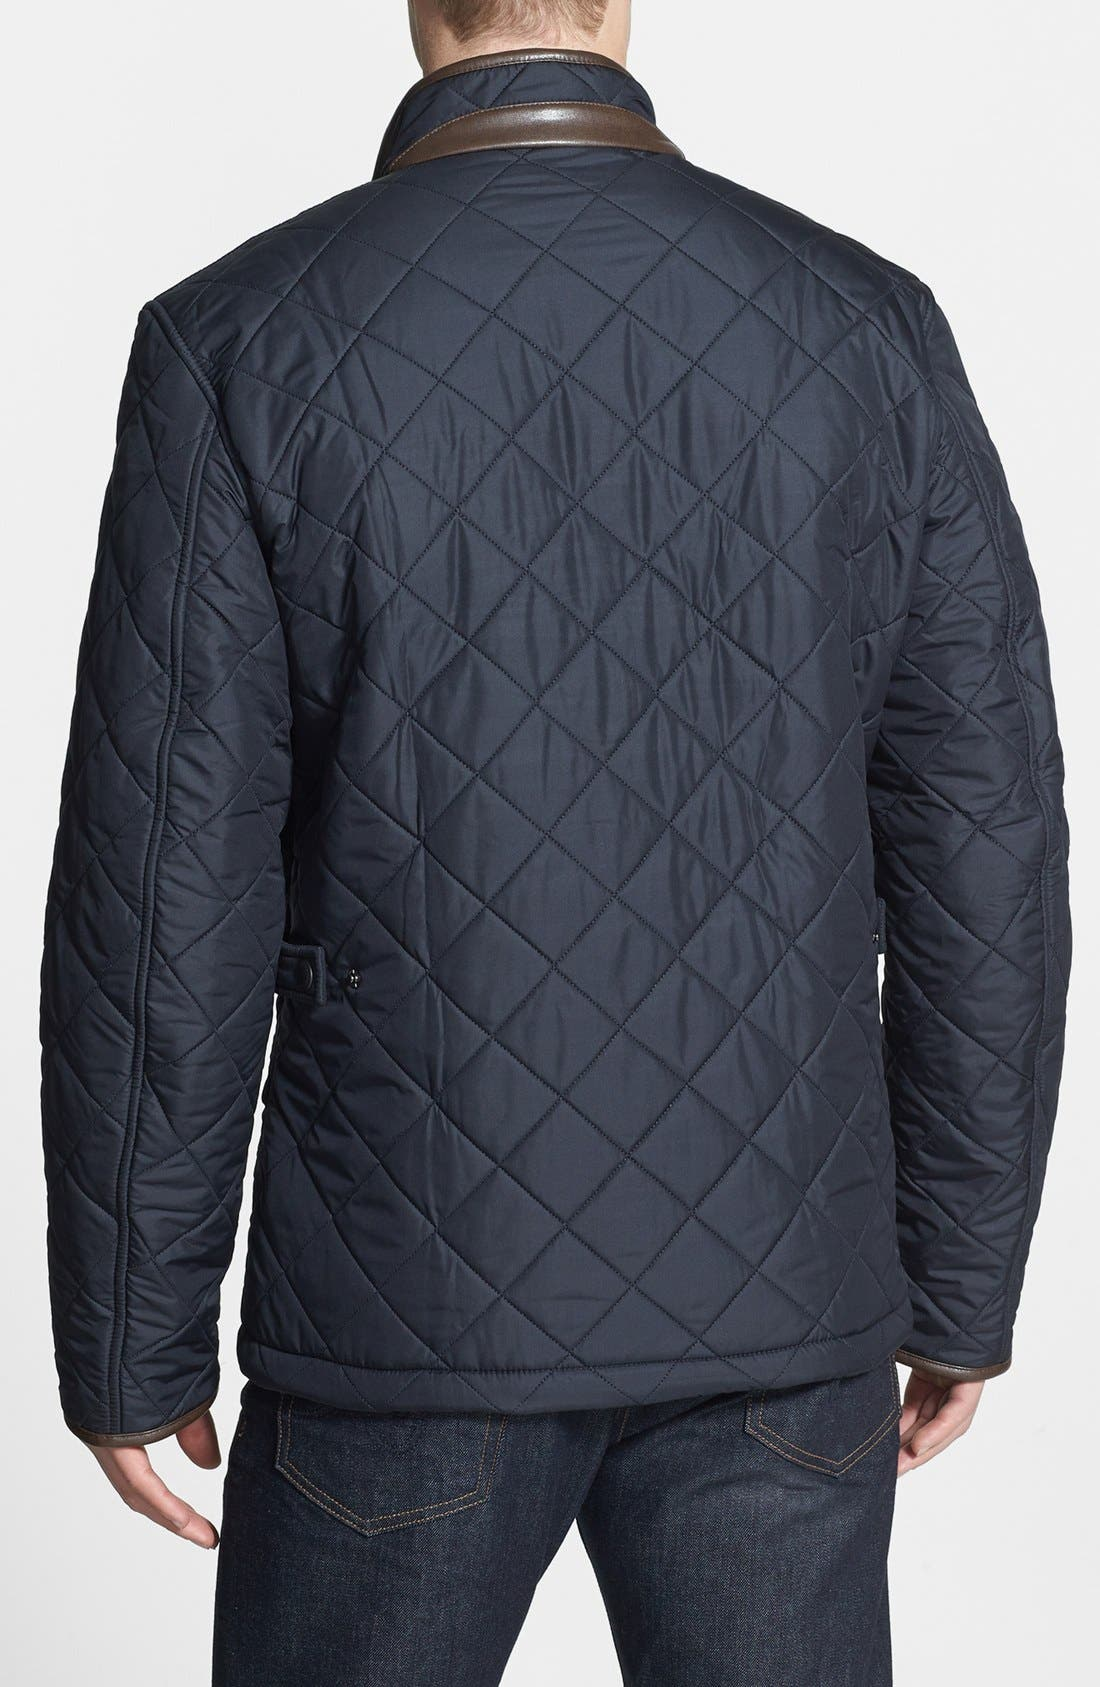 'Powell' Quilted Jacket,                             Alternate thumbnail 2, color,                             NAVY